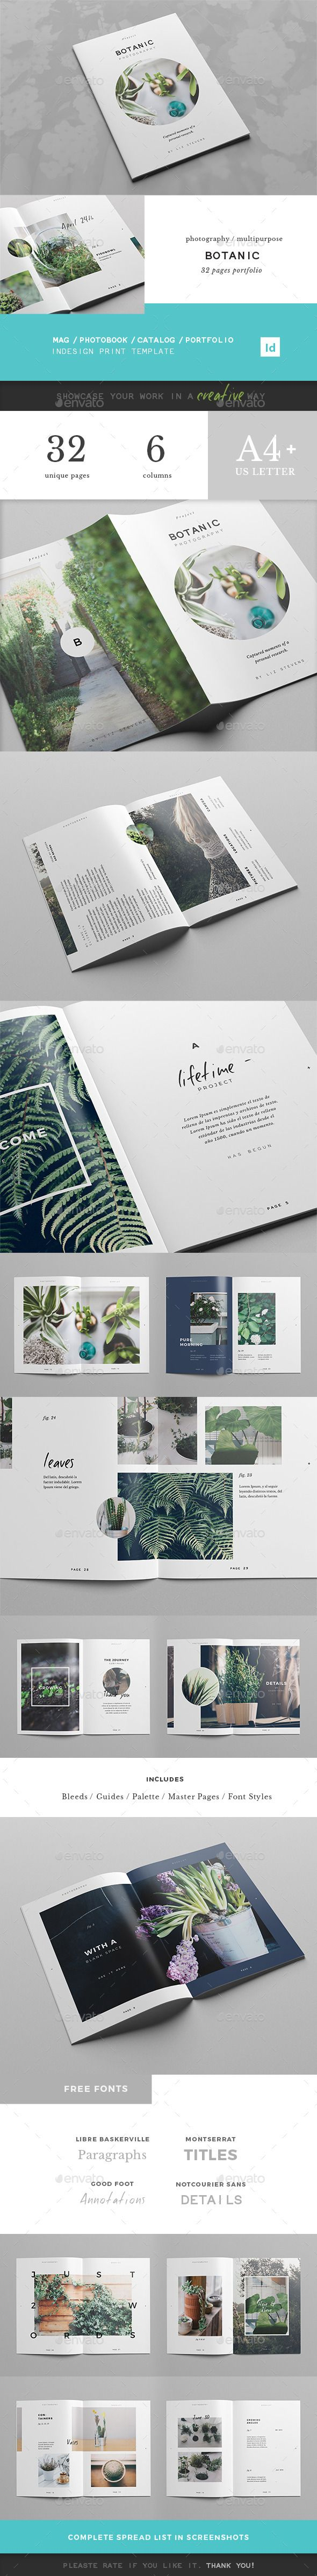 Botanic / Multipurpose Creative Portfolio Brochure Template. Download: http://graphicriver.net/item/botanic-multipurpose-creative-portfolio/11370049?ref=ksioks